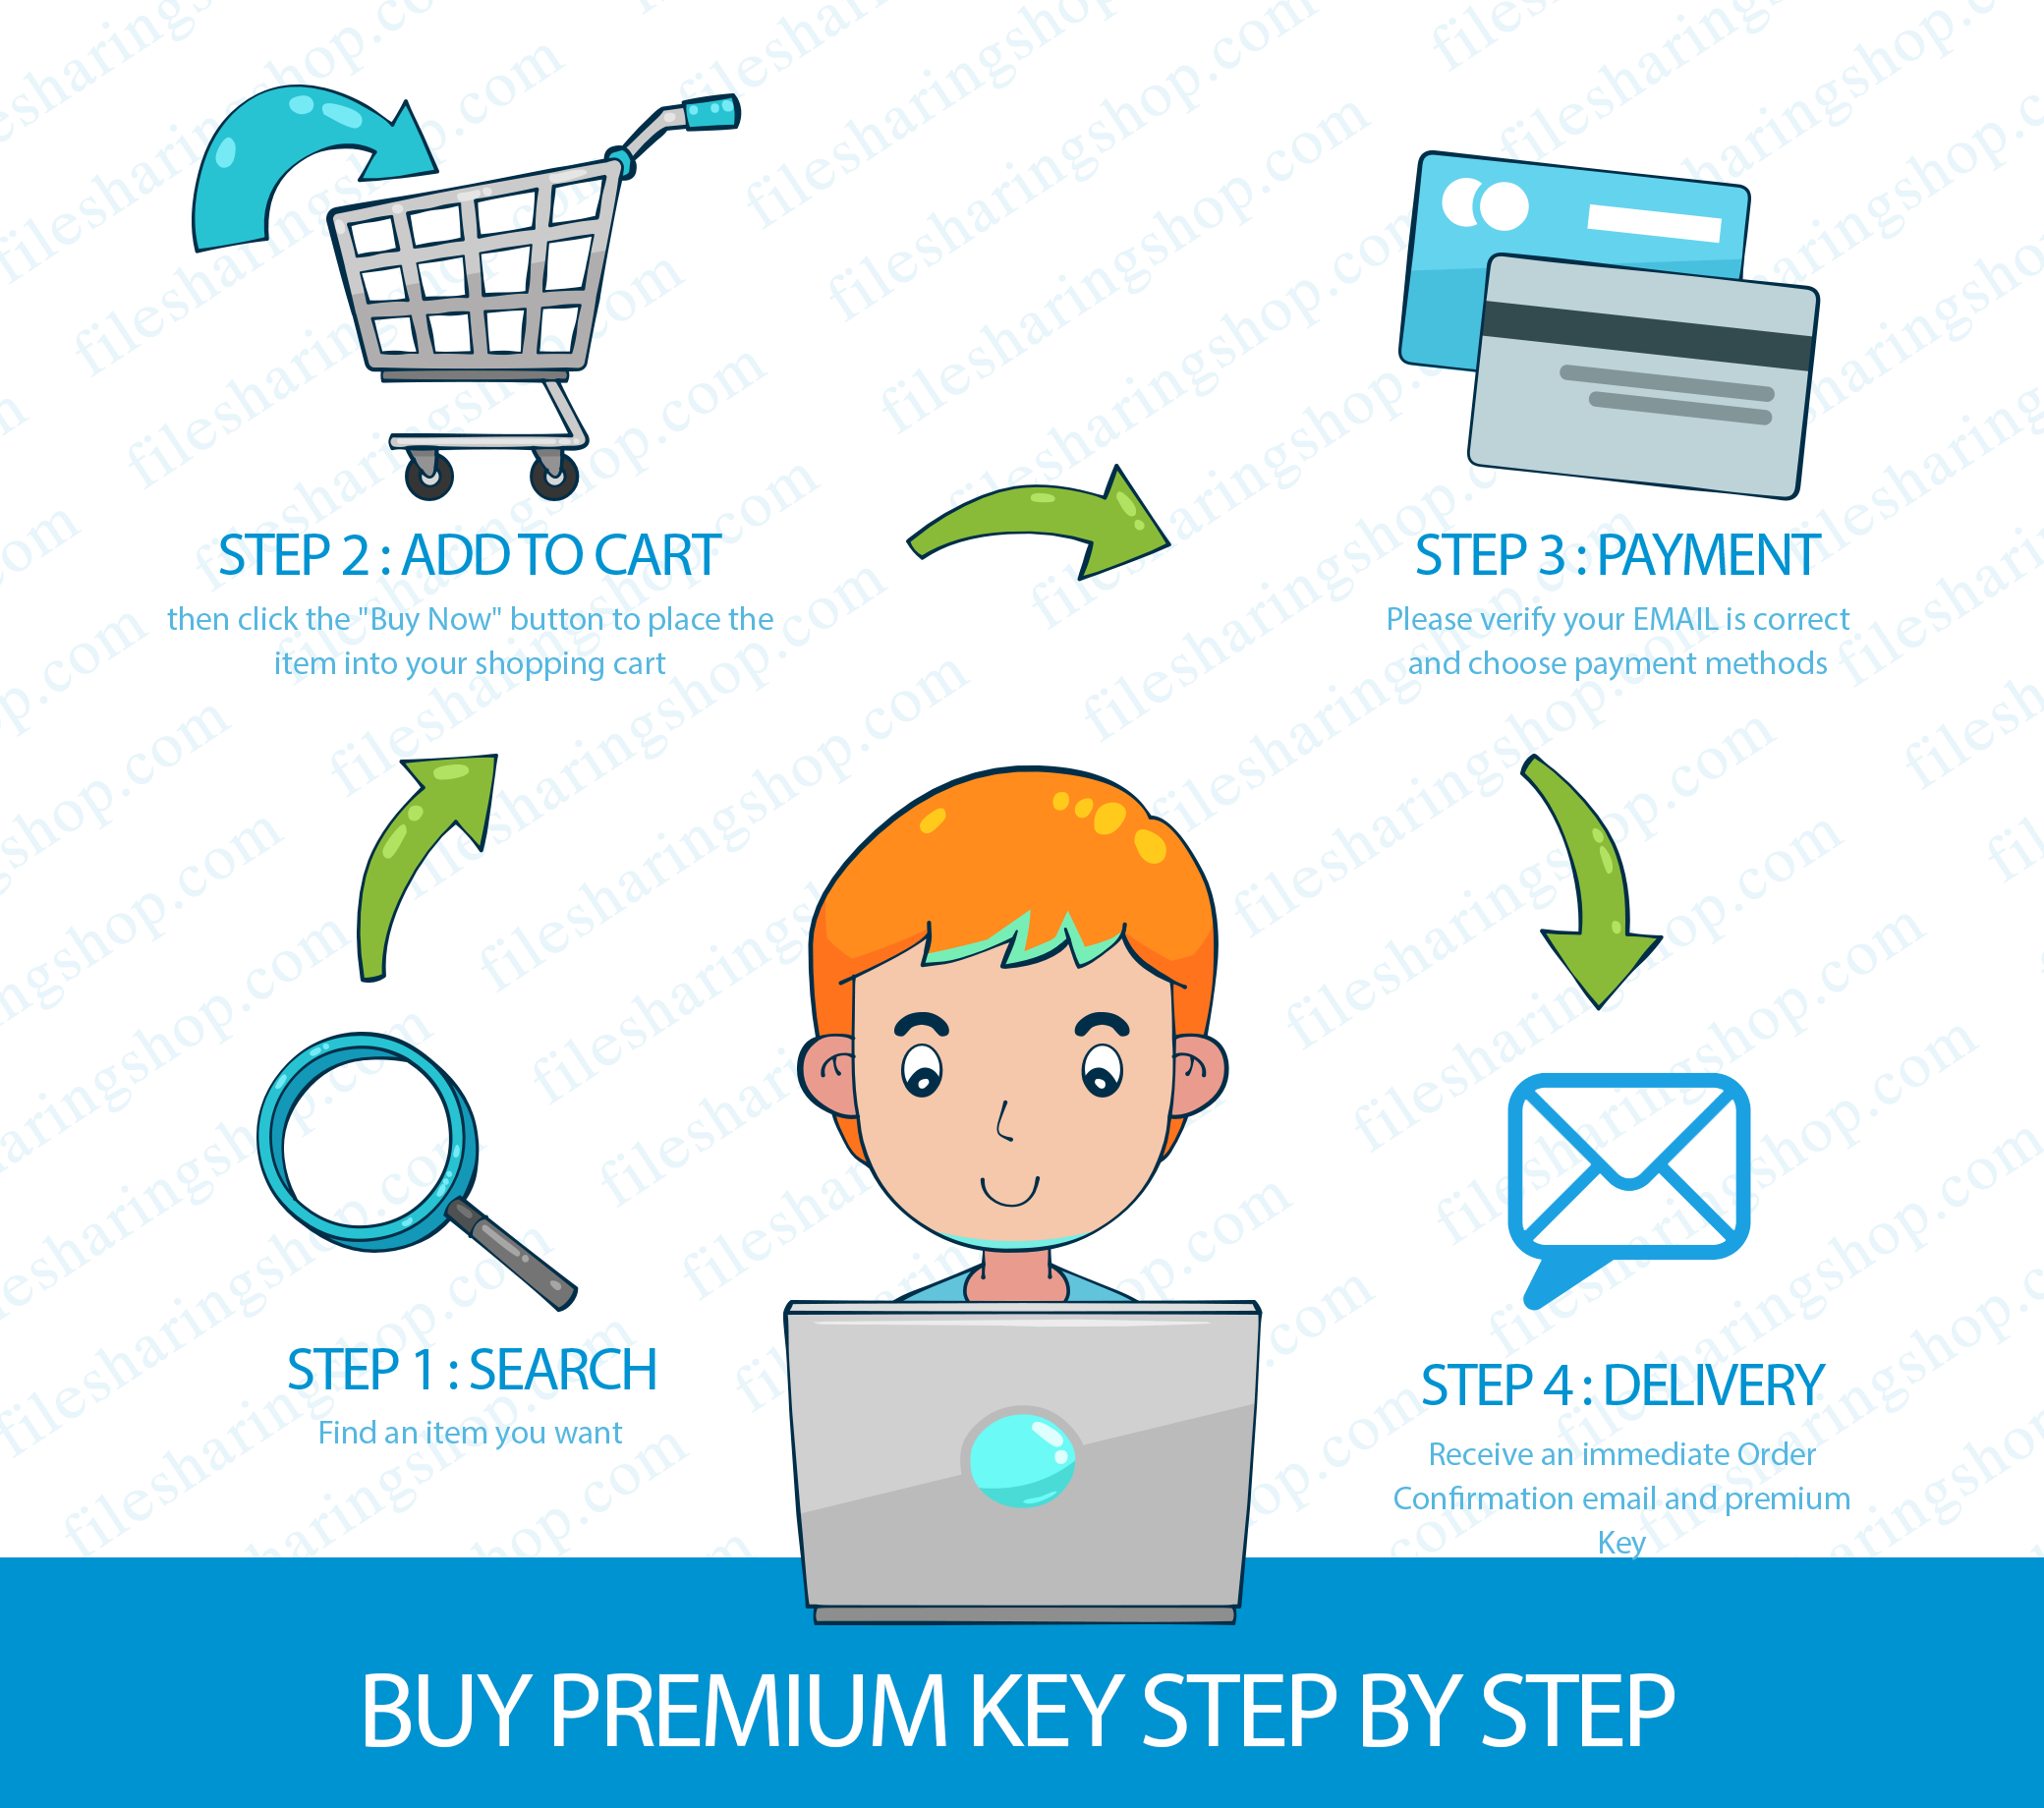 HOW TO BUY PREMIUMAX PREMIUM